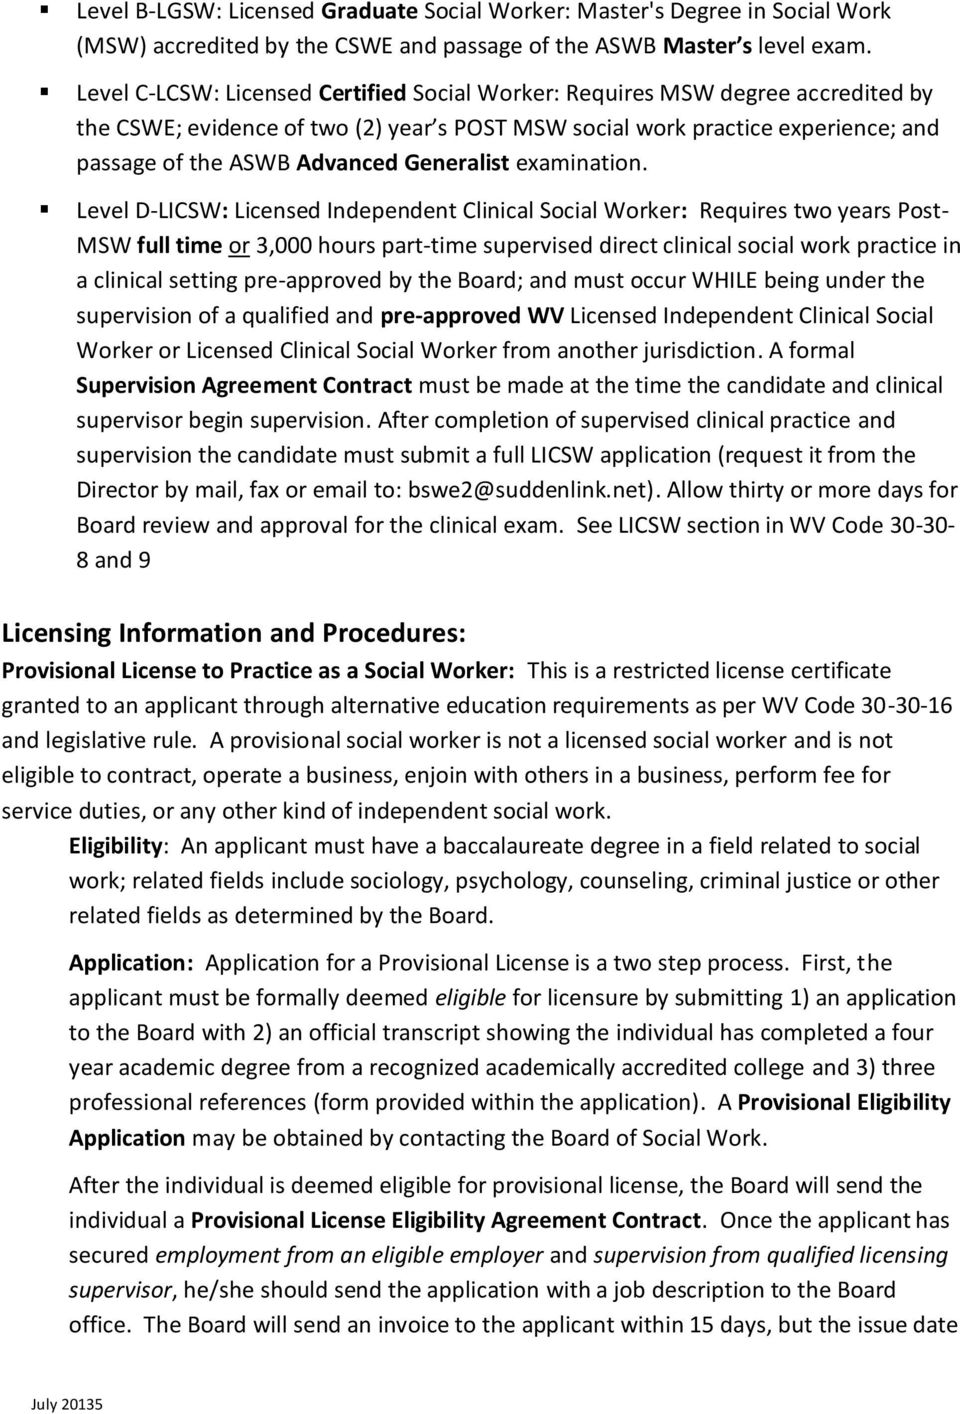 Professional Manual For Licensed Social Workers Wv Board Of Social